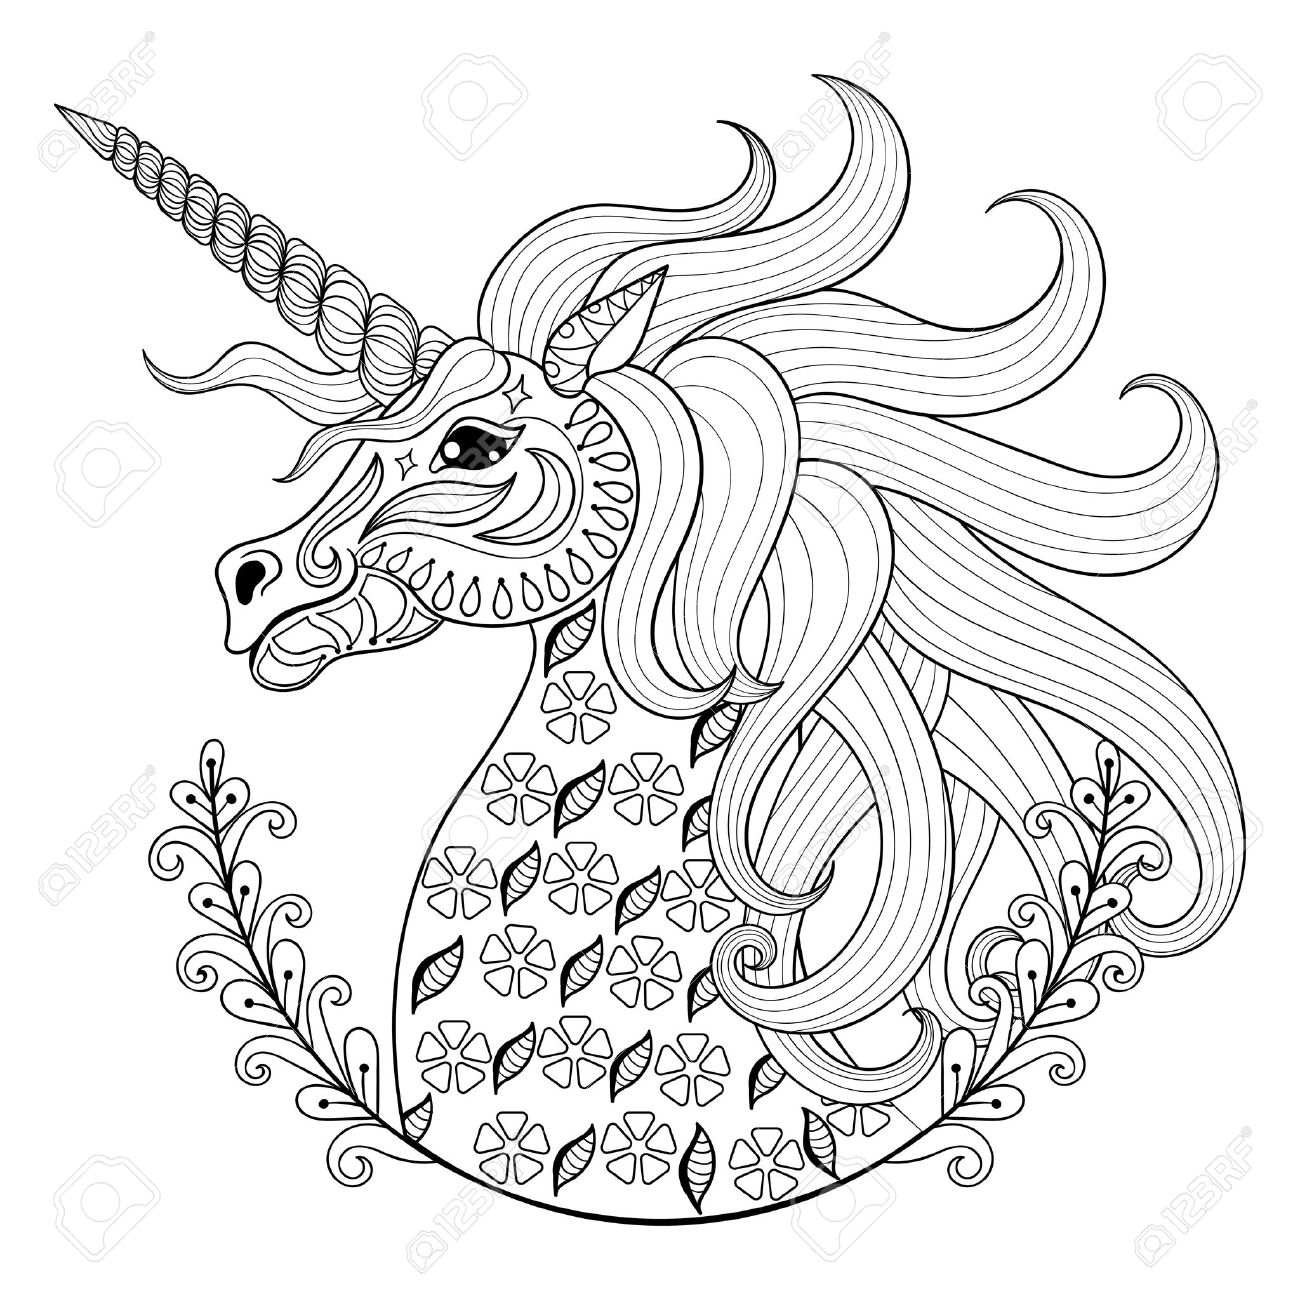 Unicorns - Coloring Pages for Adults | 1300x1300